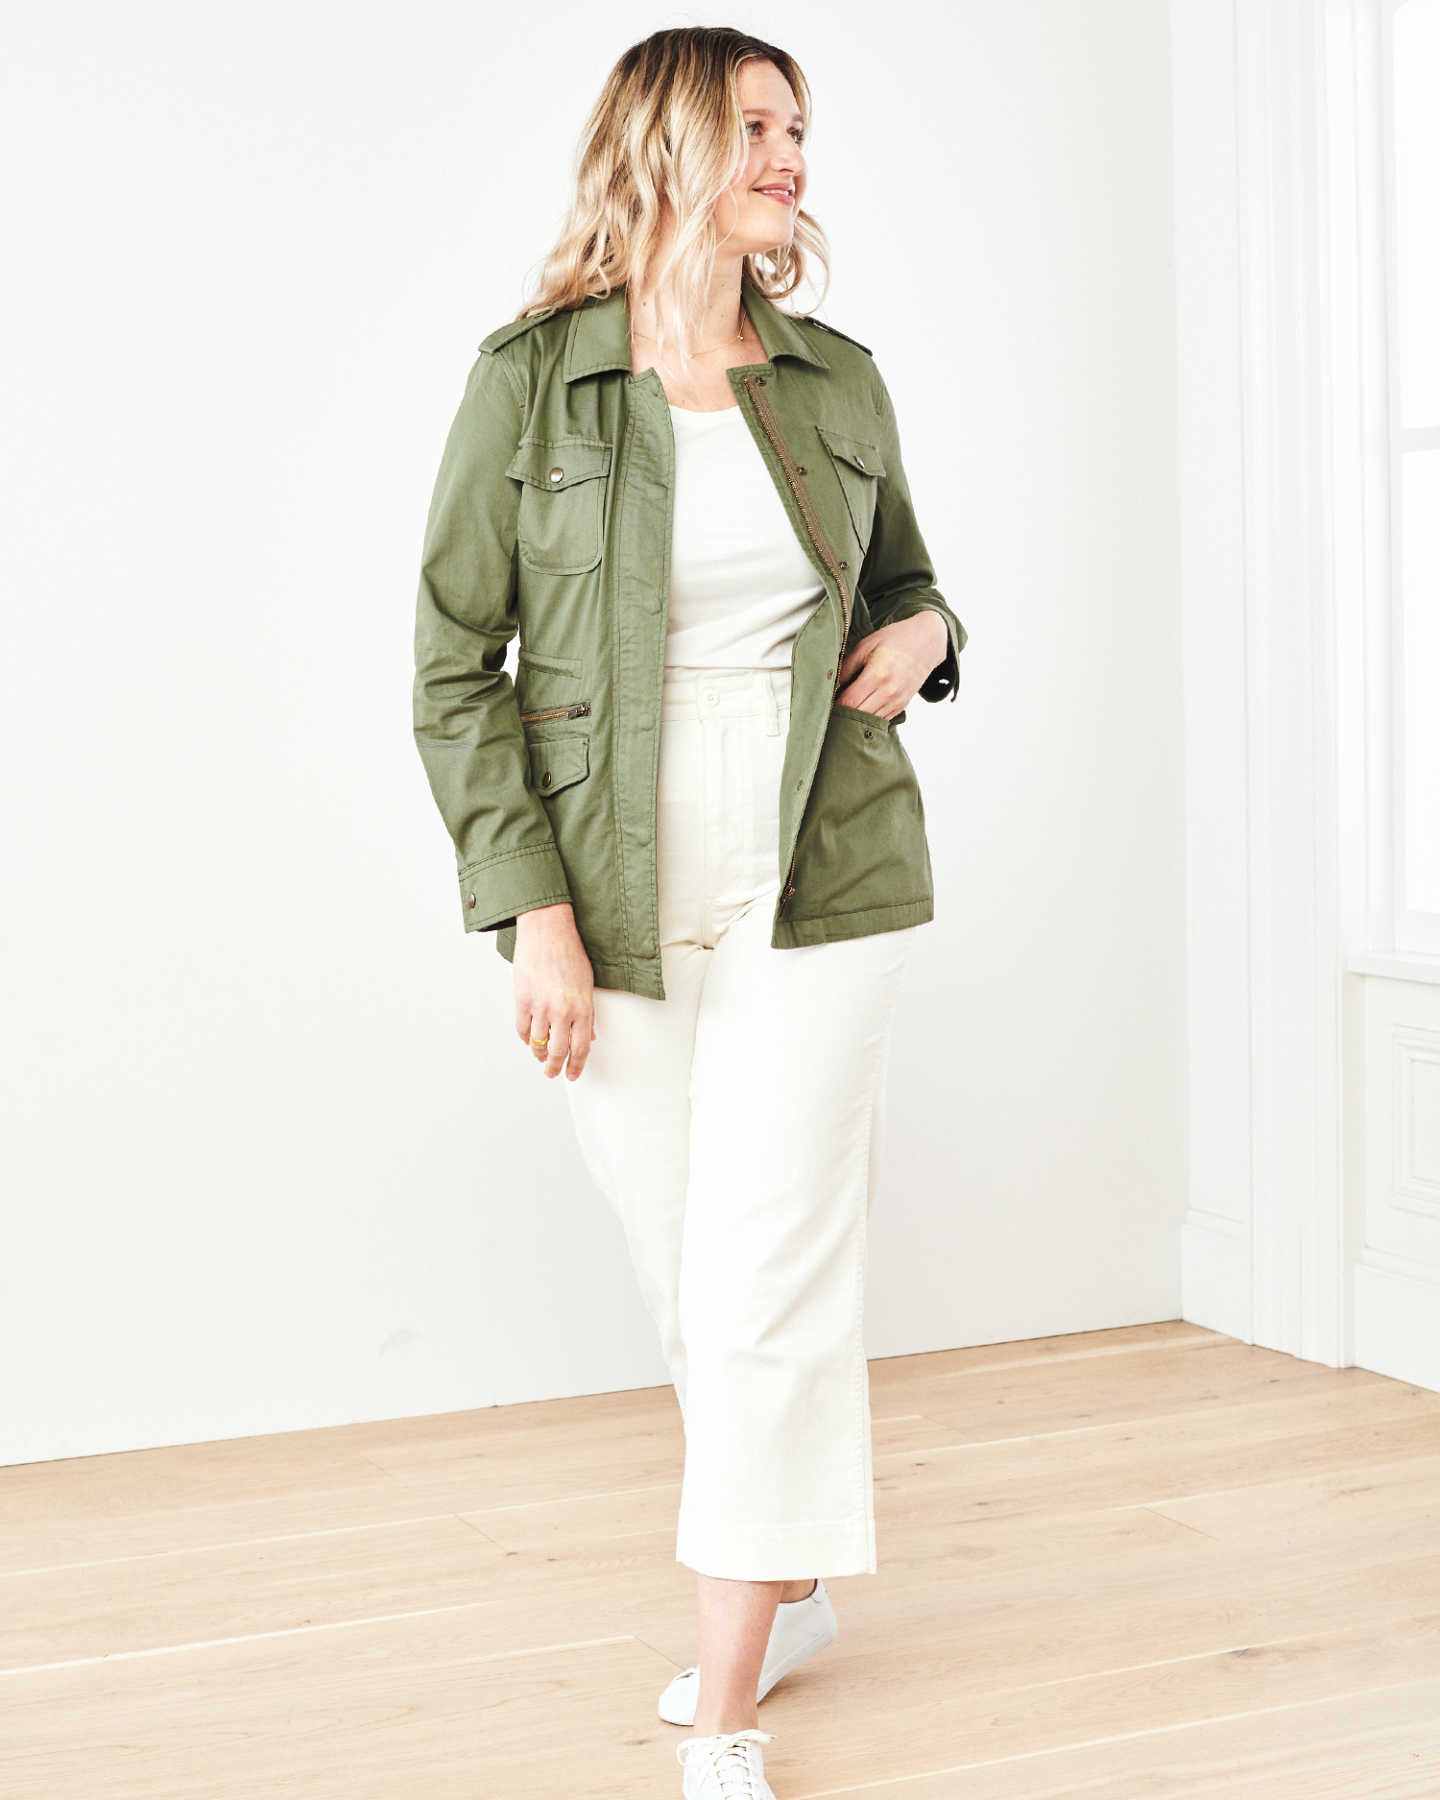 Cotton Twill Utility Jacket - Olive - 6